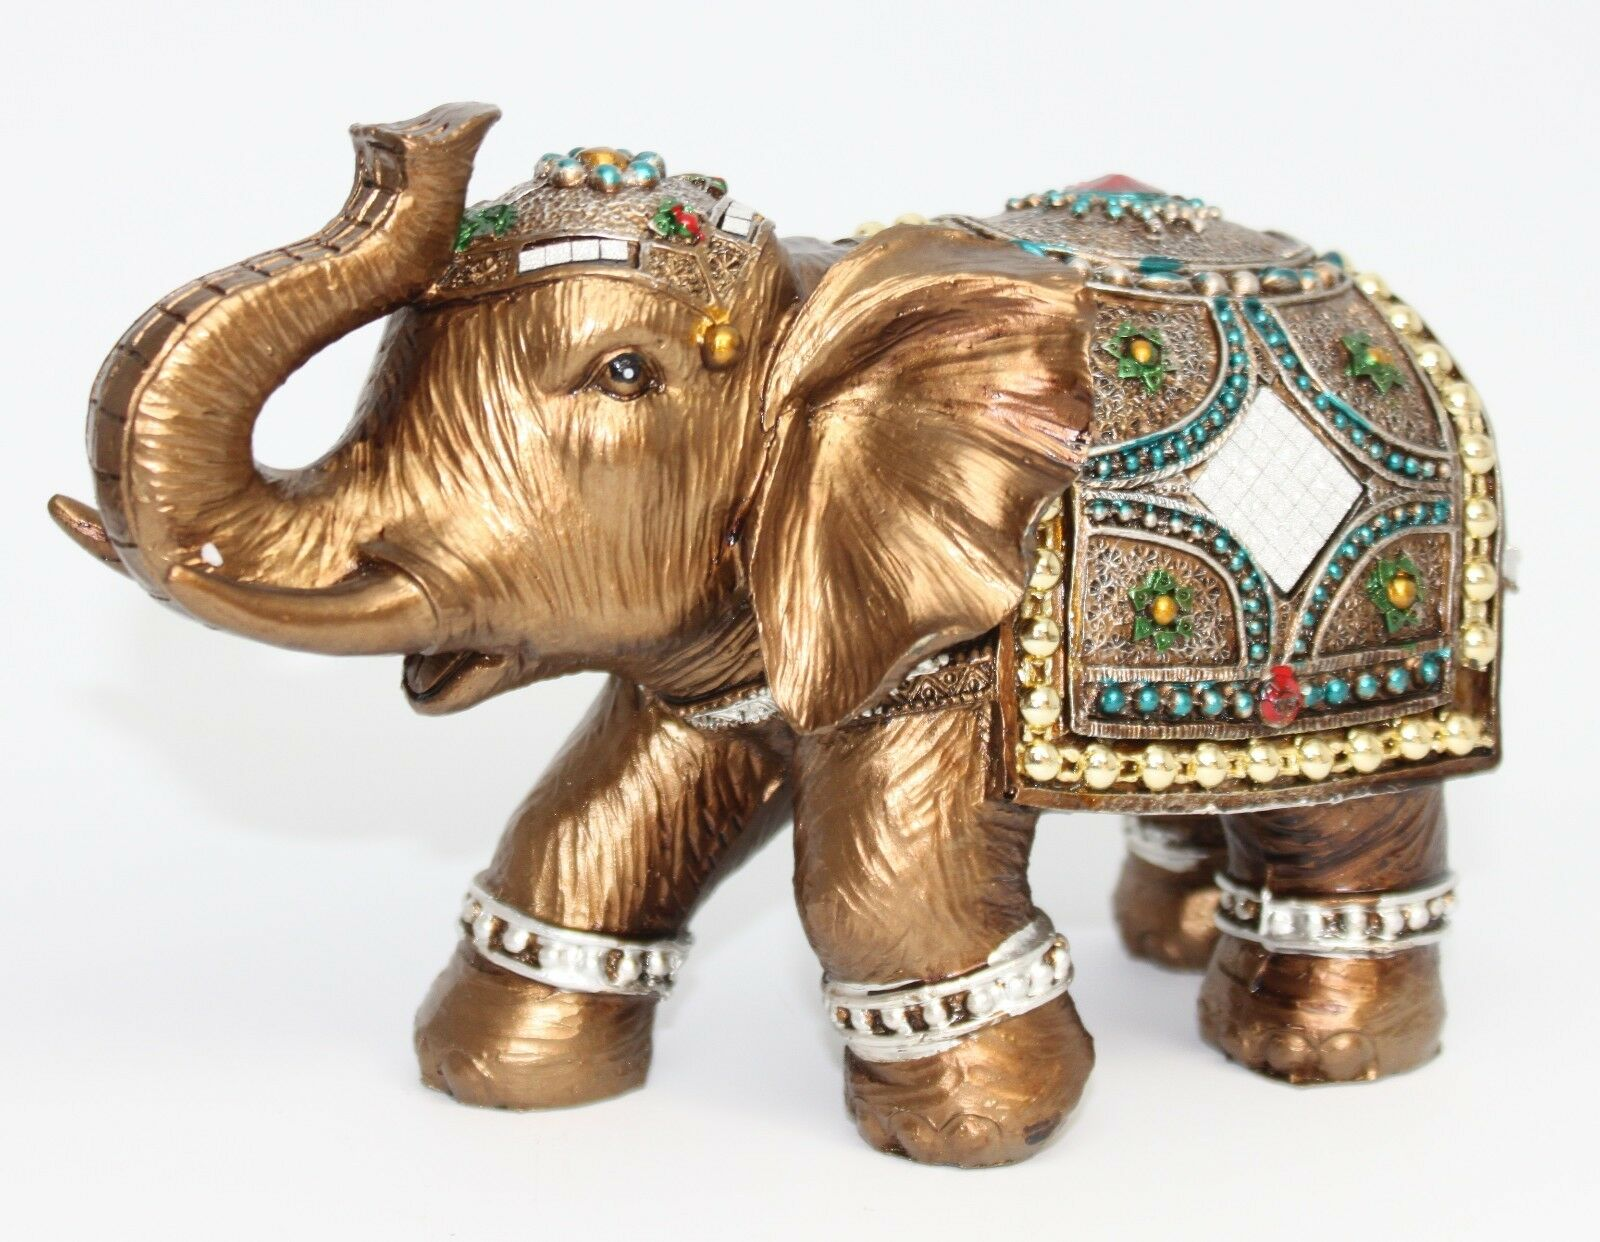 feng shui elegant elephant trunk statue lucky wealth figurine gift home decor ebay. Black Bedroom Furniture Sets. Home Design Ideas